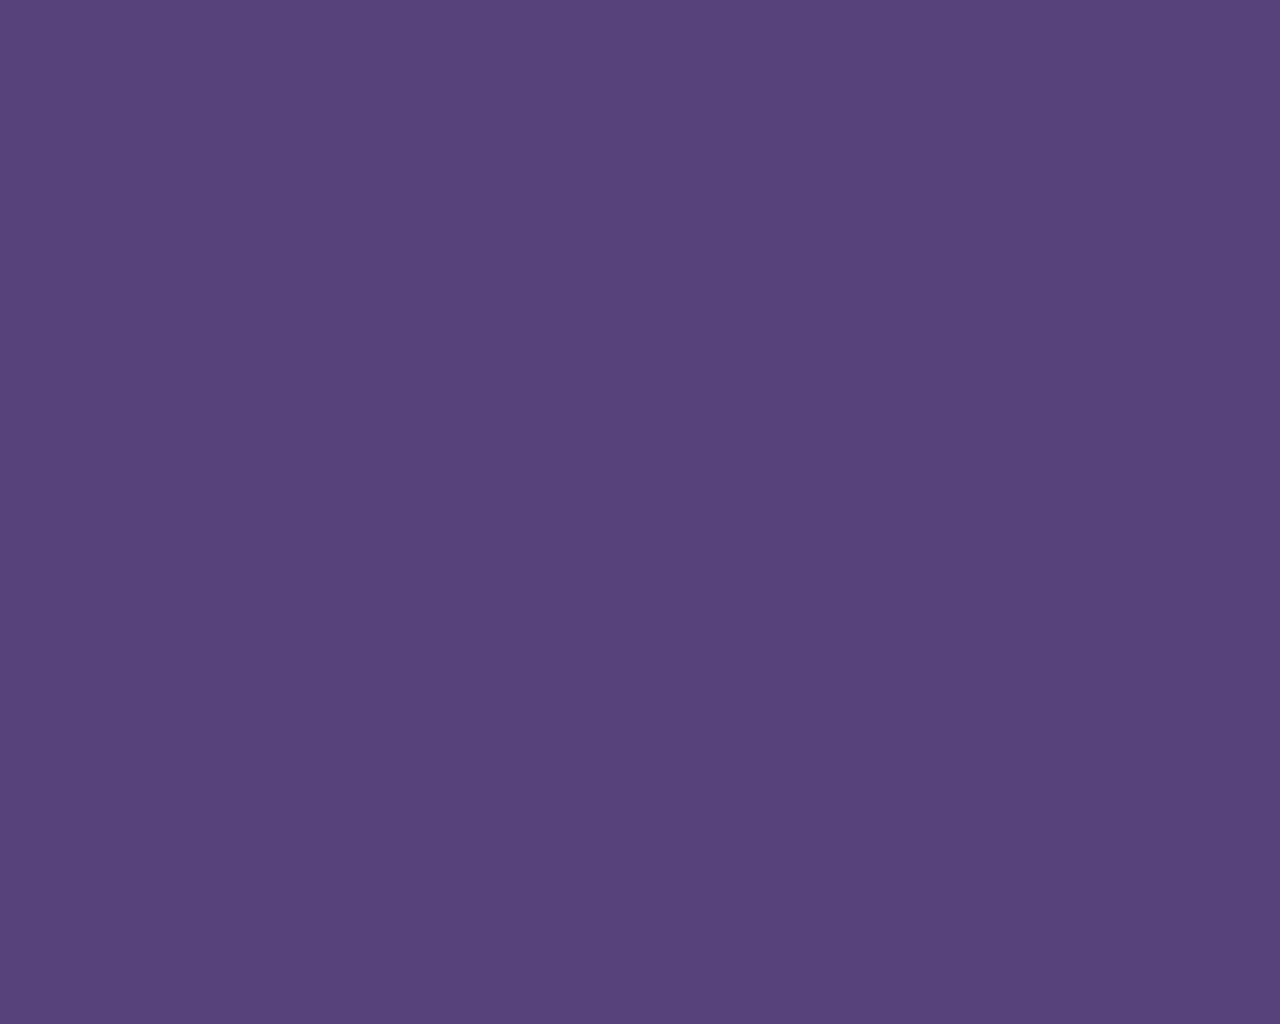 1280x1024 Cyber Grape Solid Color Background